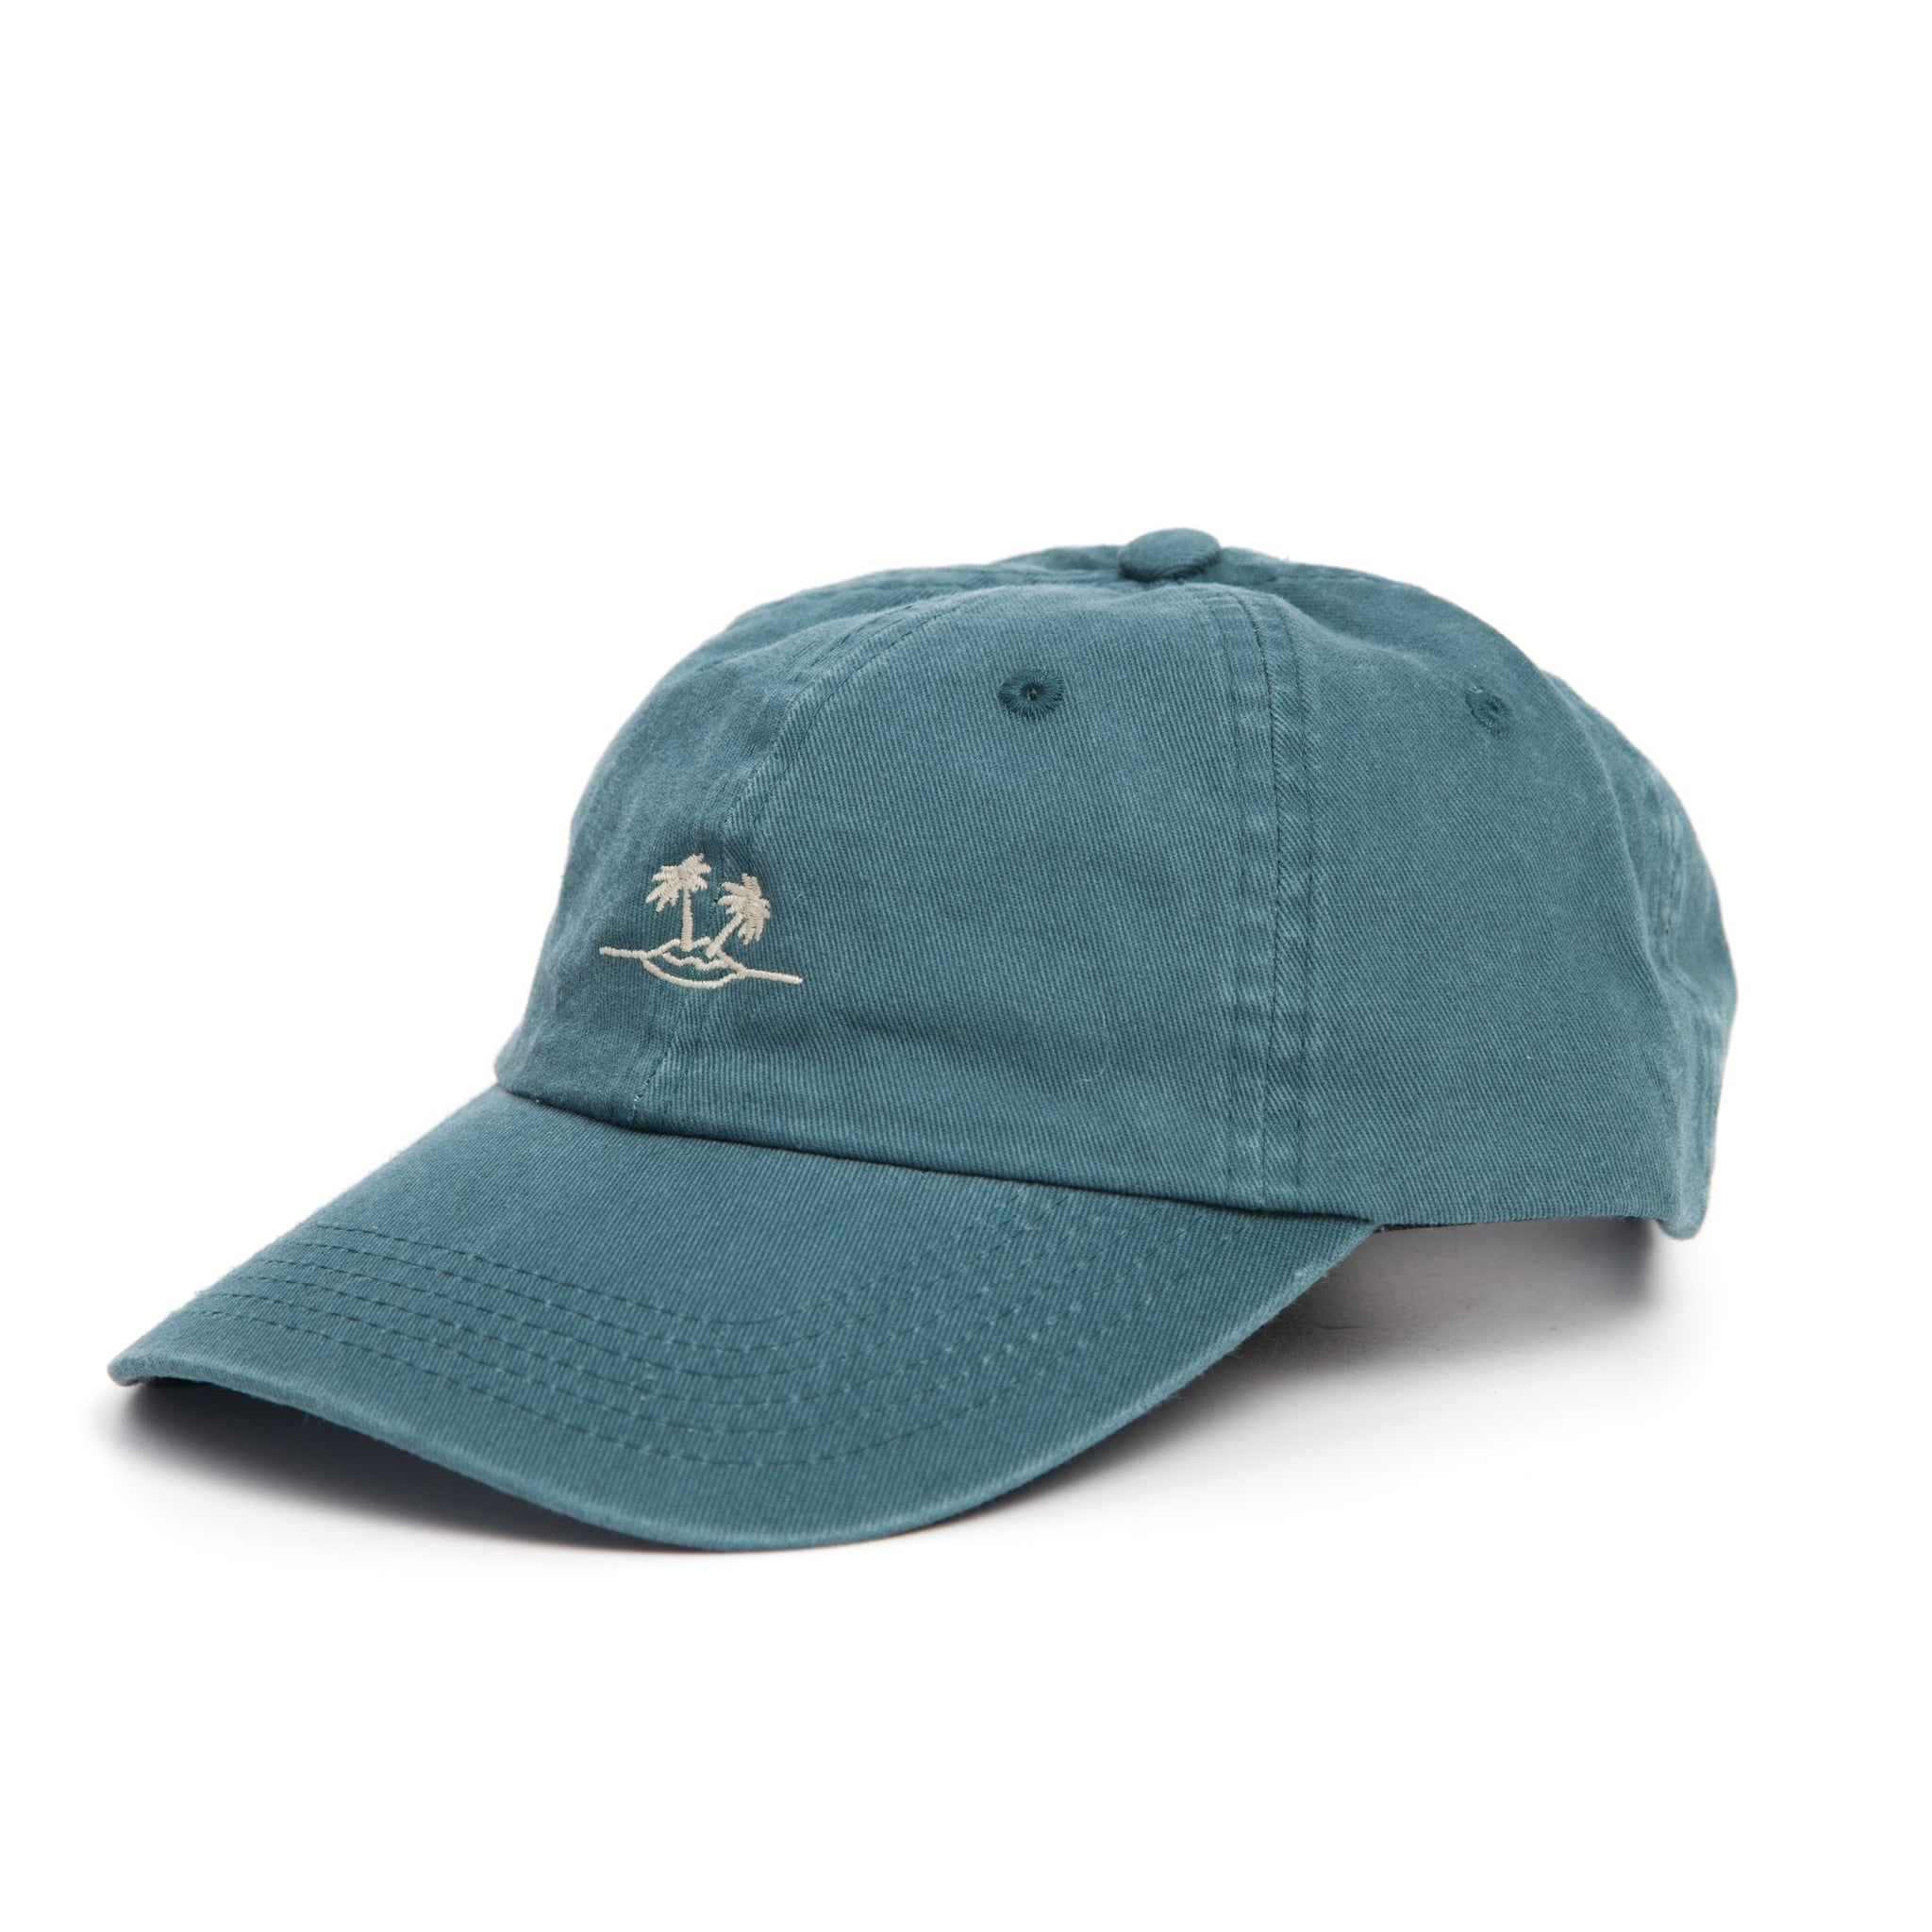 Teal Dad Cap // Palm